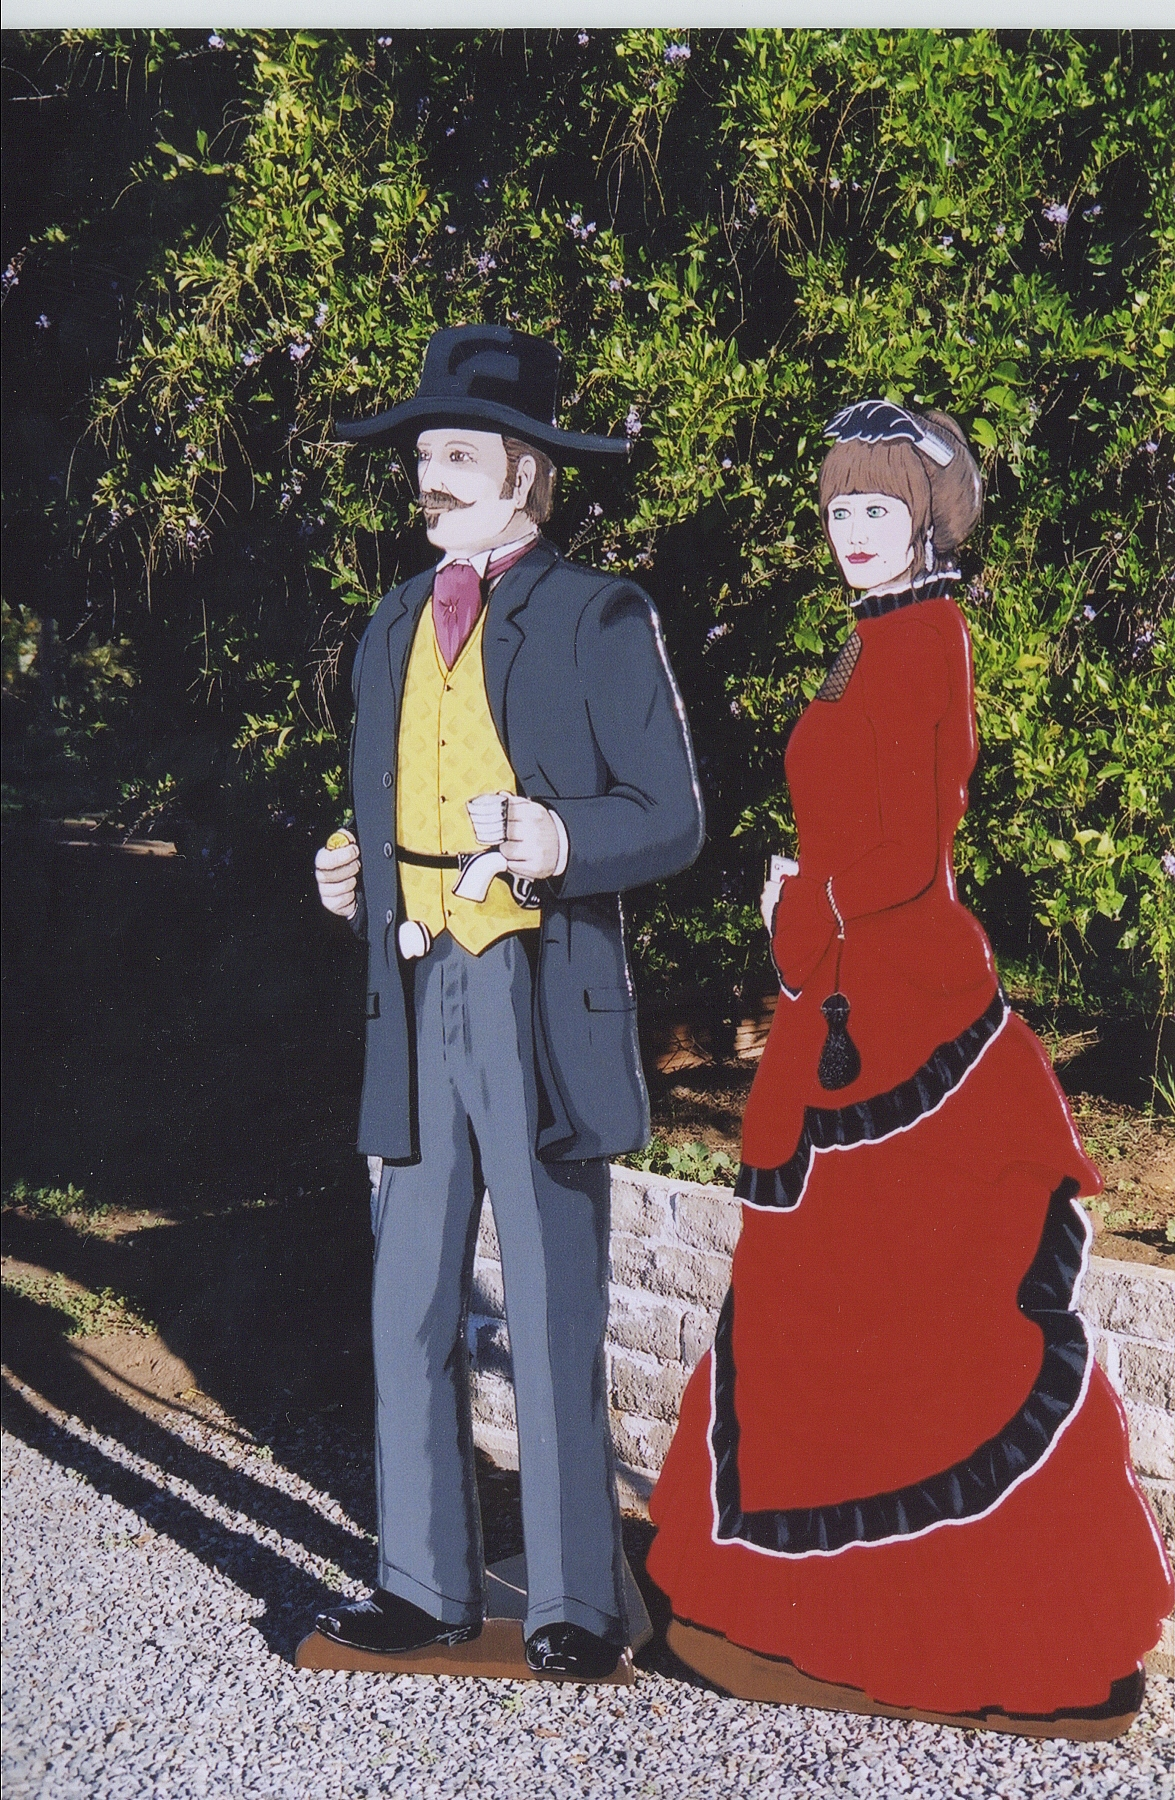 Lifesizecutout_western woman and western man valleycenterjuniorhigh.JPG